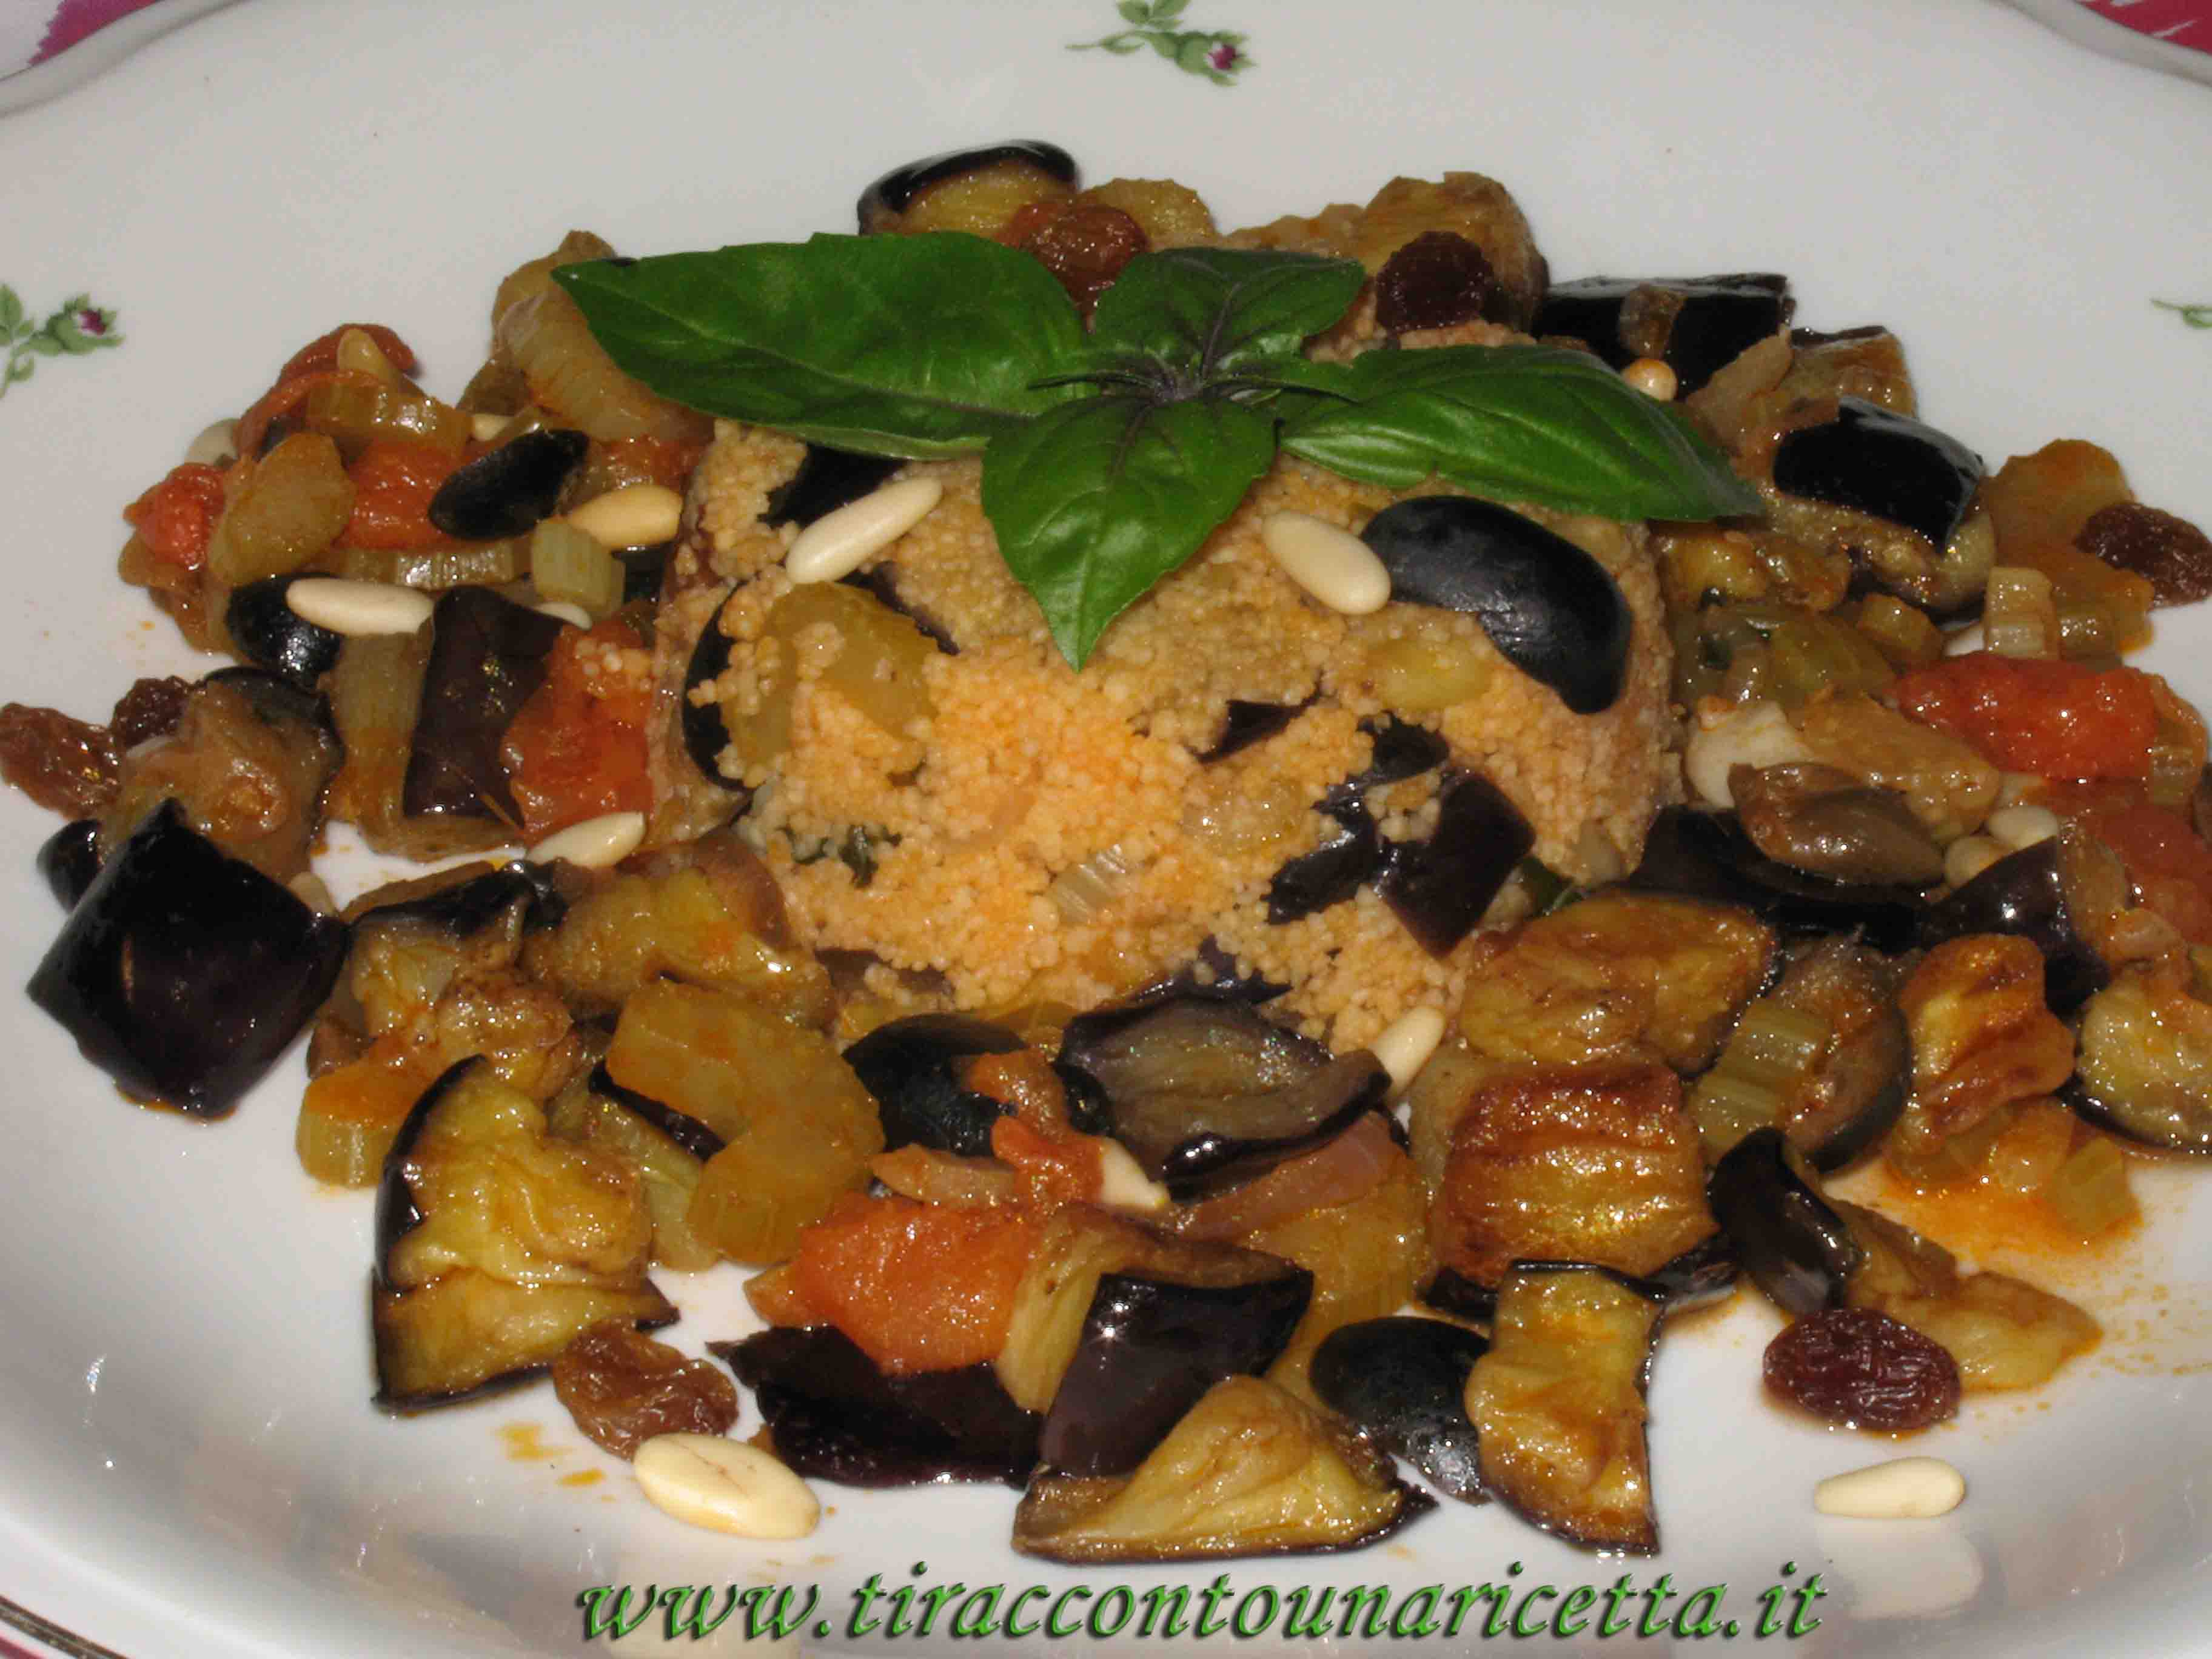 Couscous with Sicilian caponata